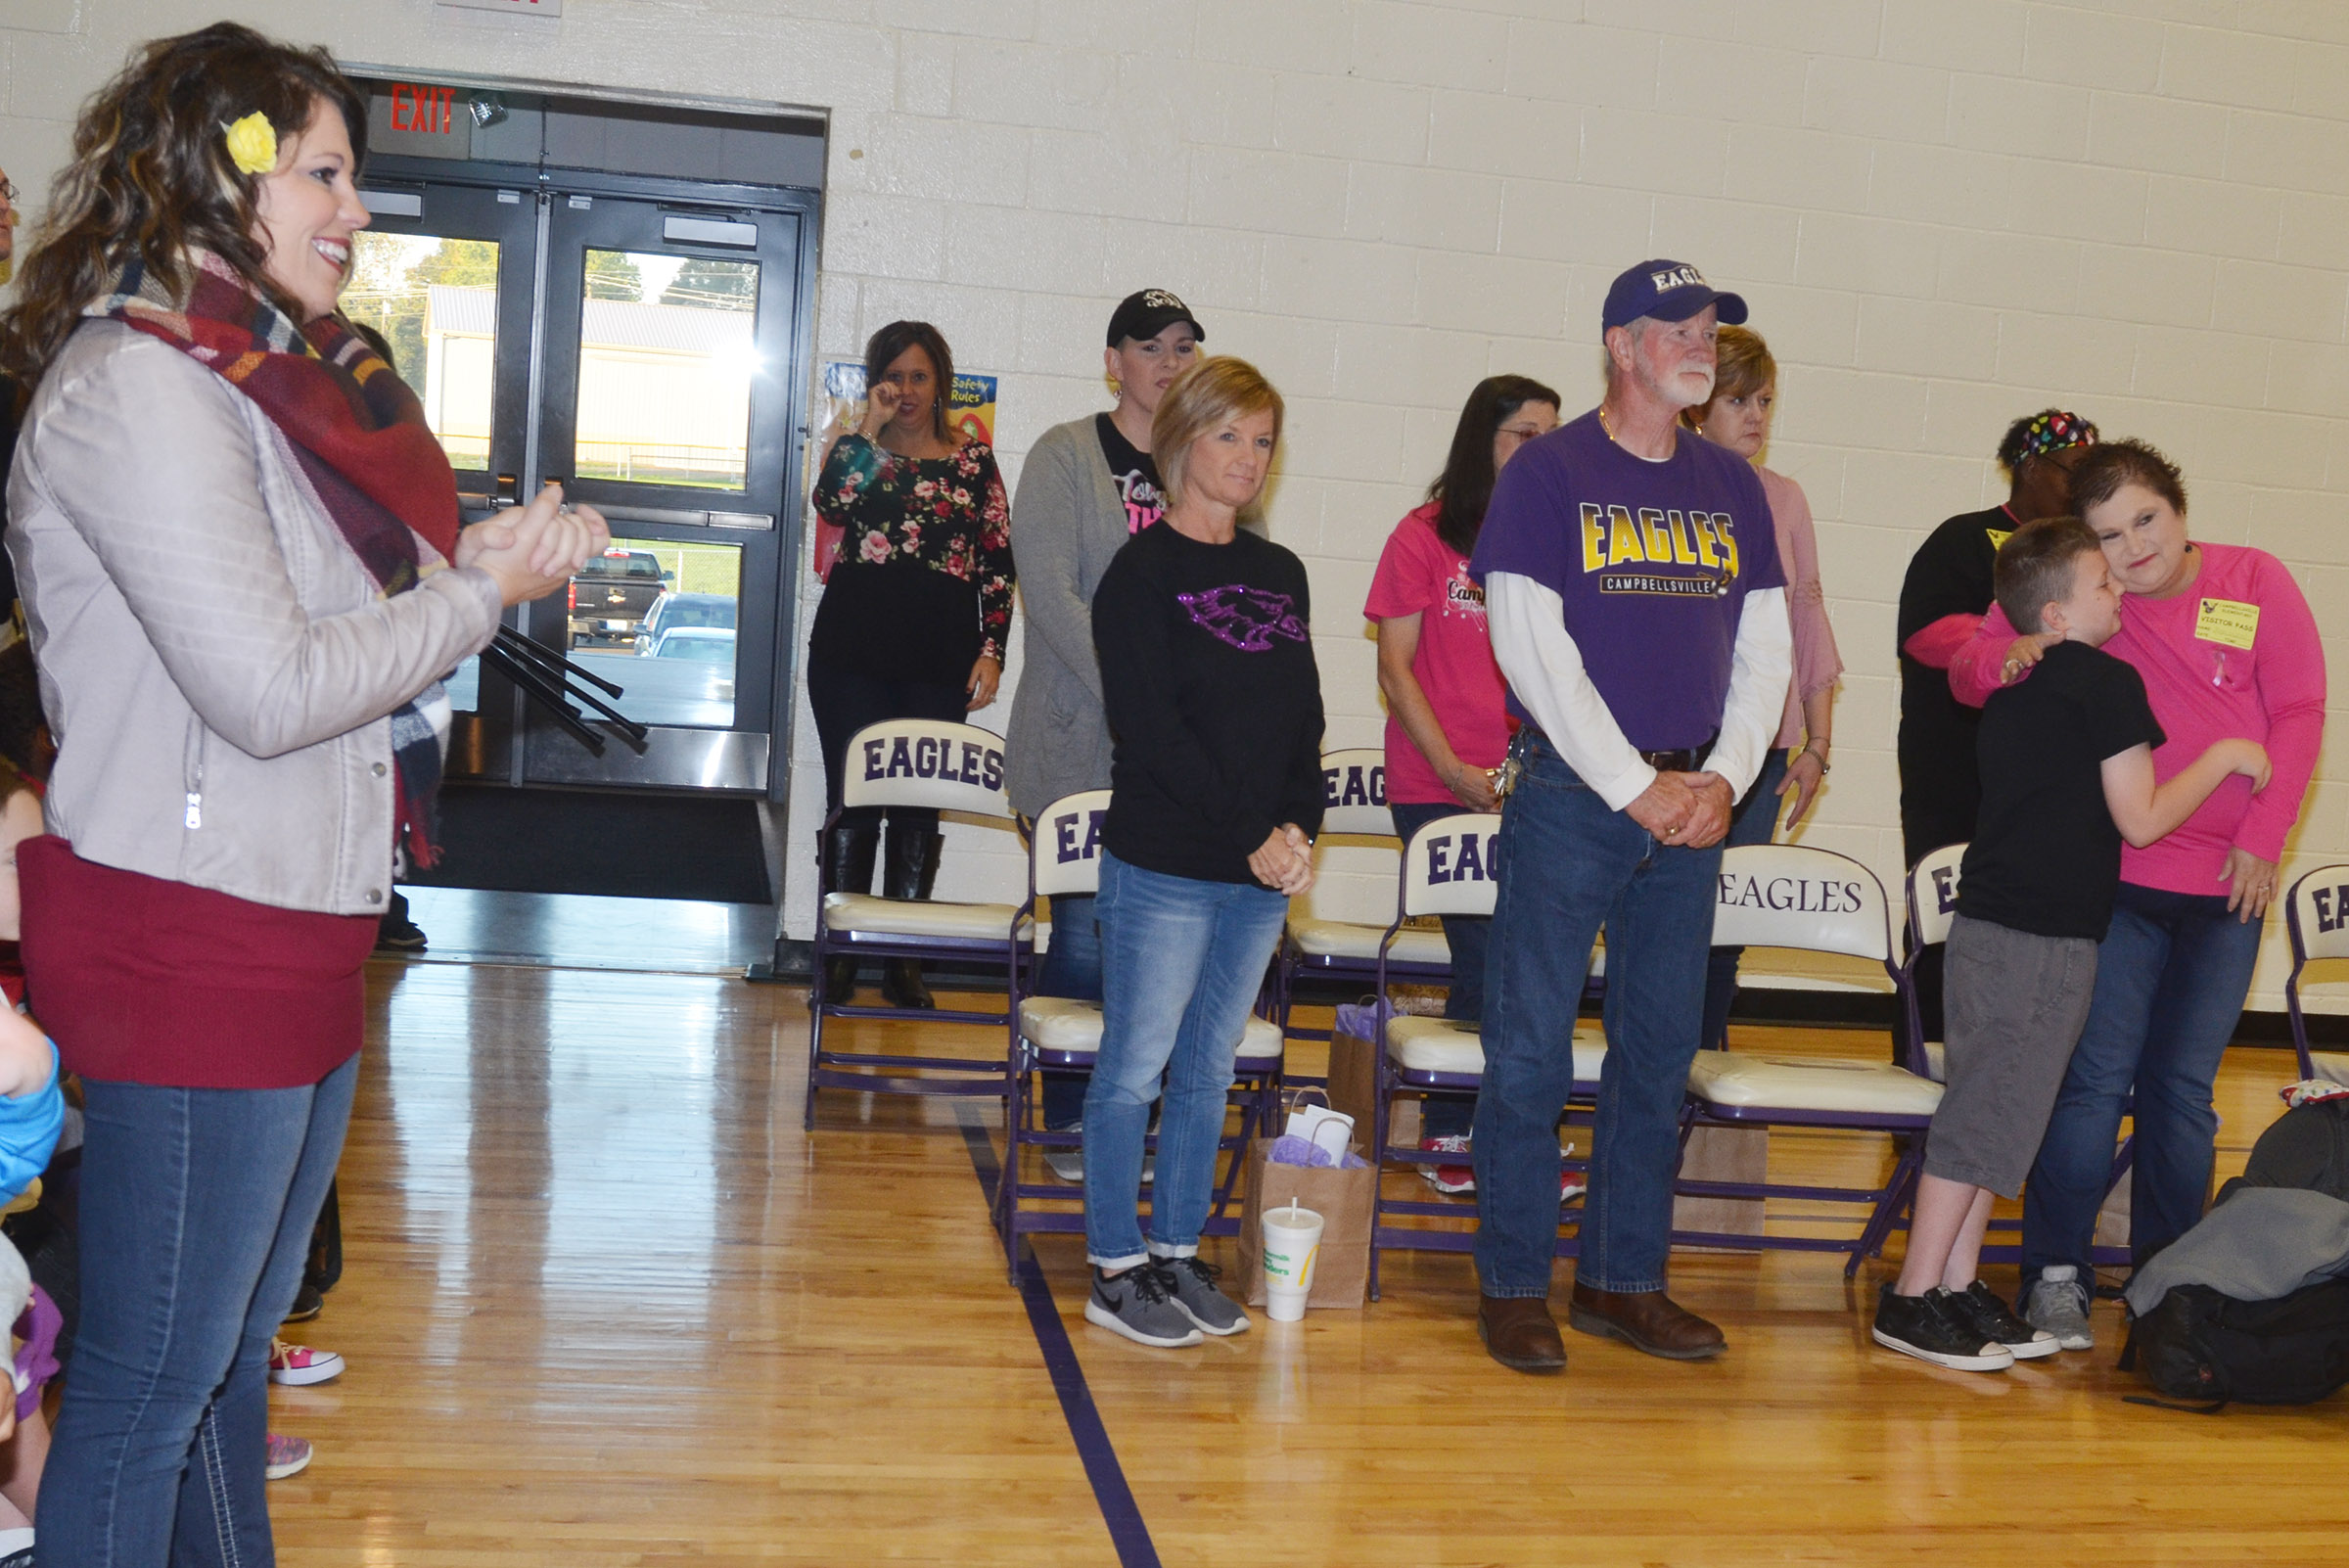 CES students honor Eagle family members who are cancer survivors.